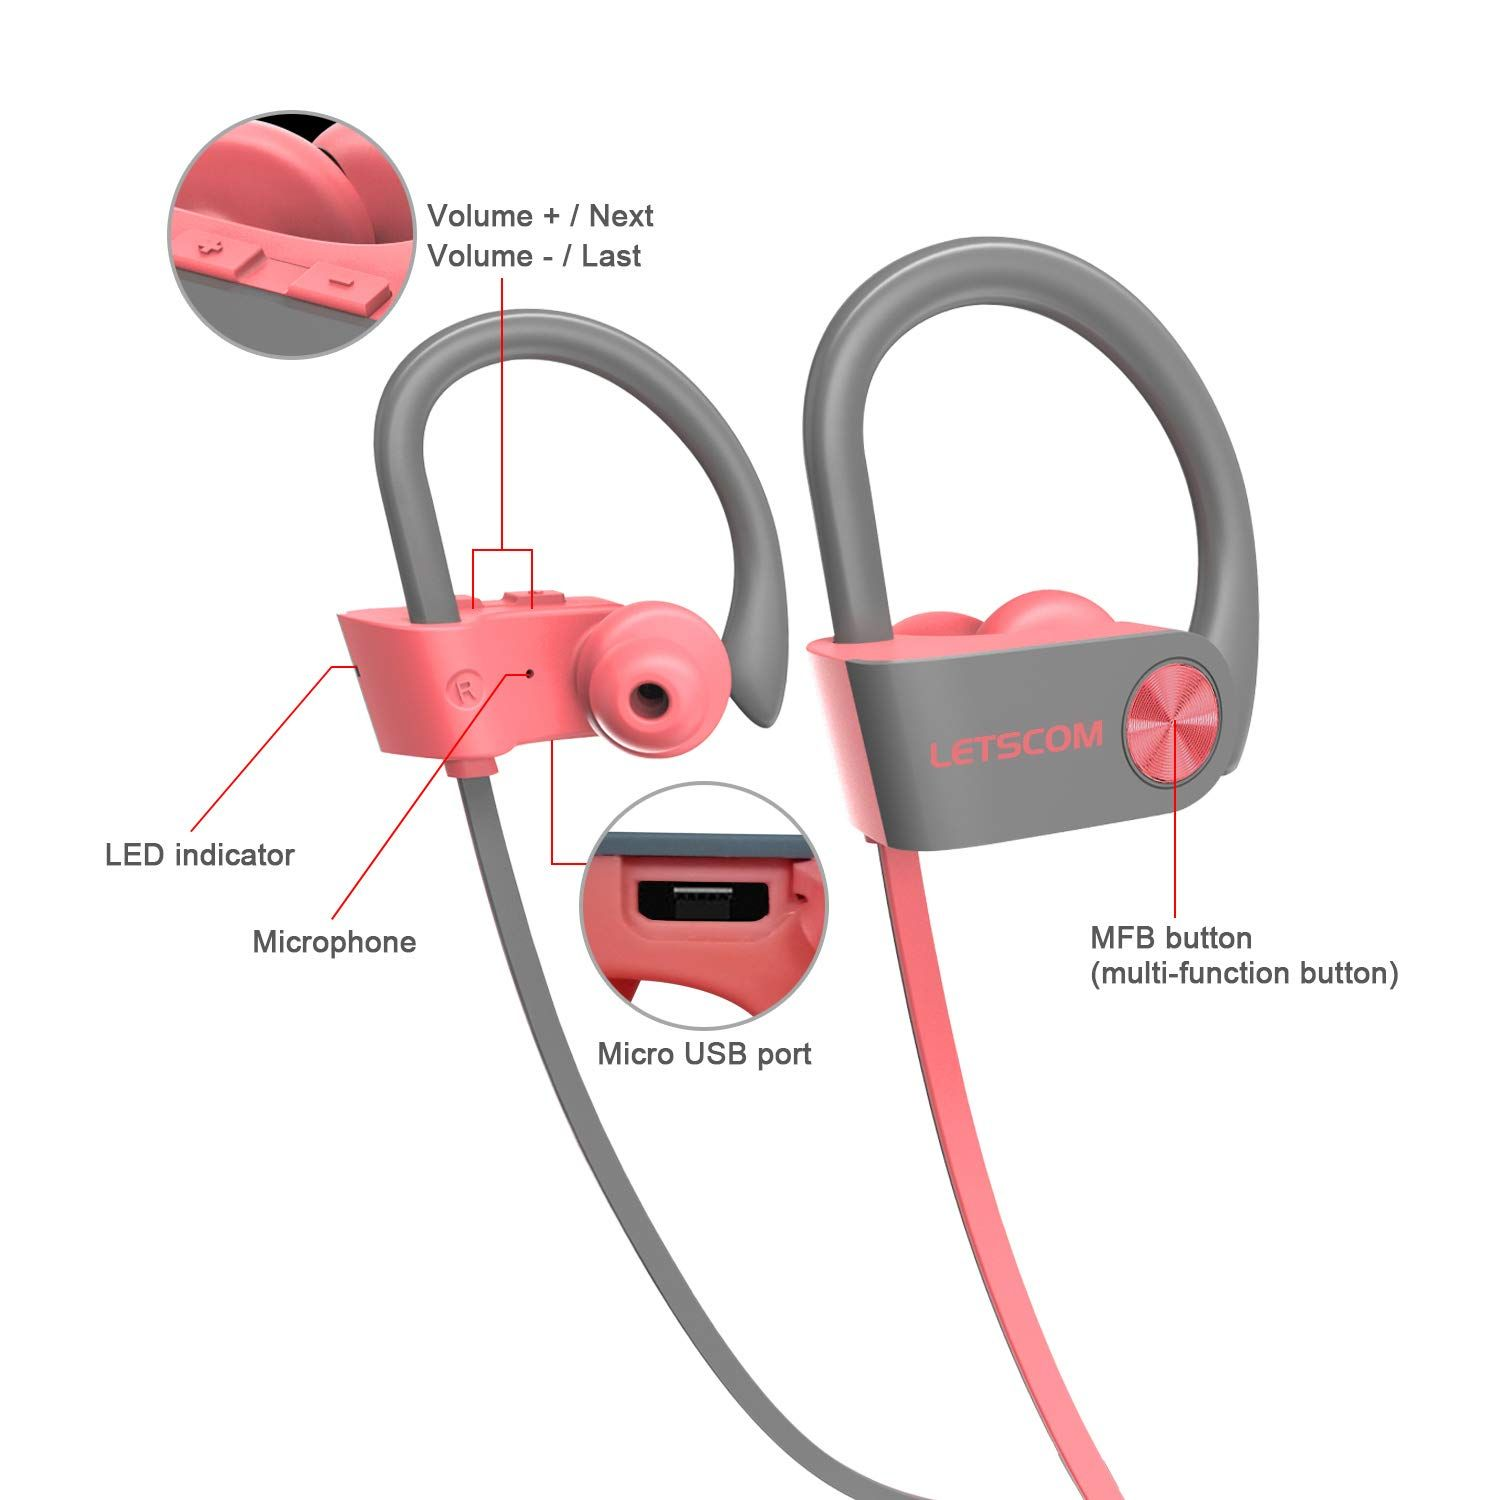 Amazon Com Letscom Bluetooth Headphones Wireless Earbuds Mic Ipx7 Waterproof Nano Coating Sports Earphone Bluetooth Headphones Waterproof Earbuds Headphones